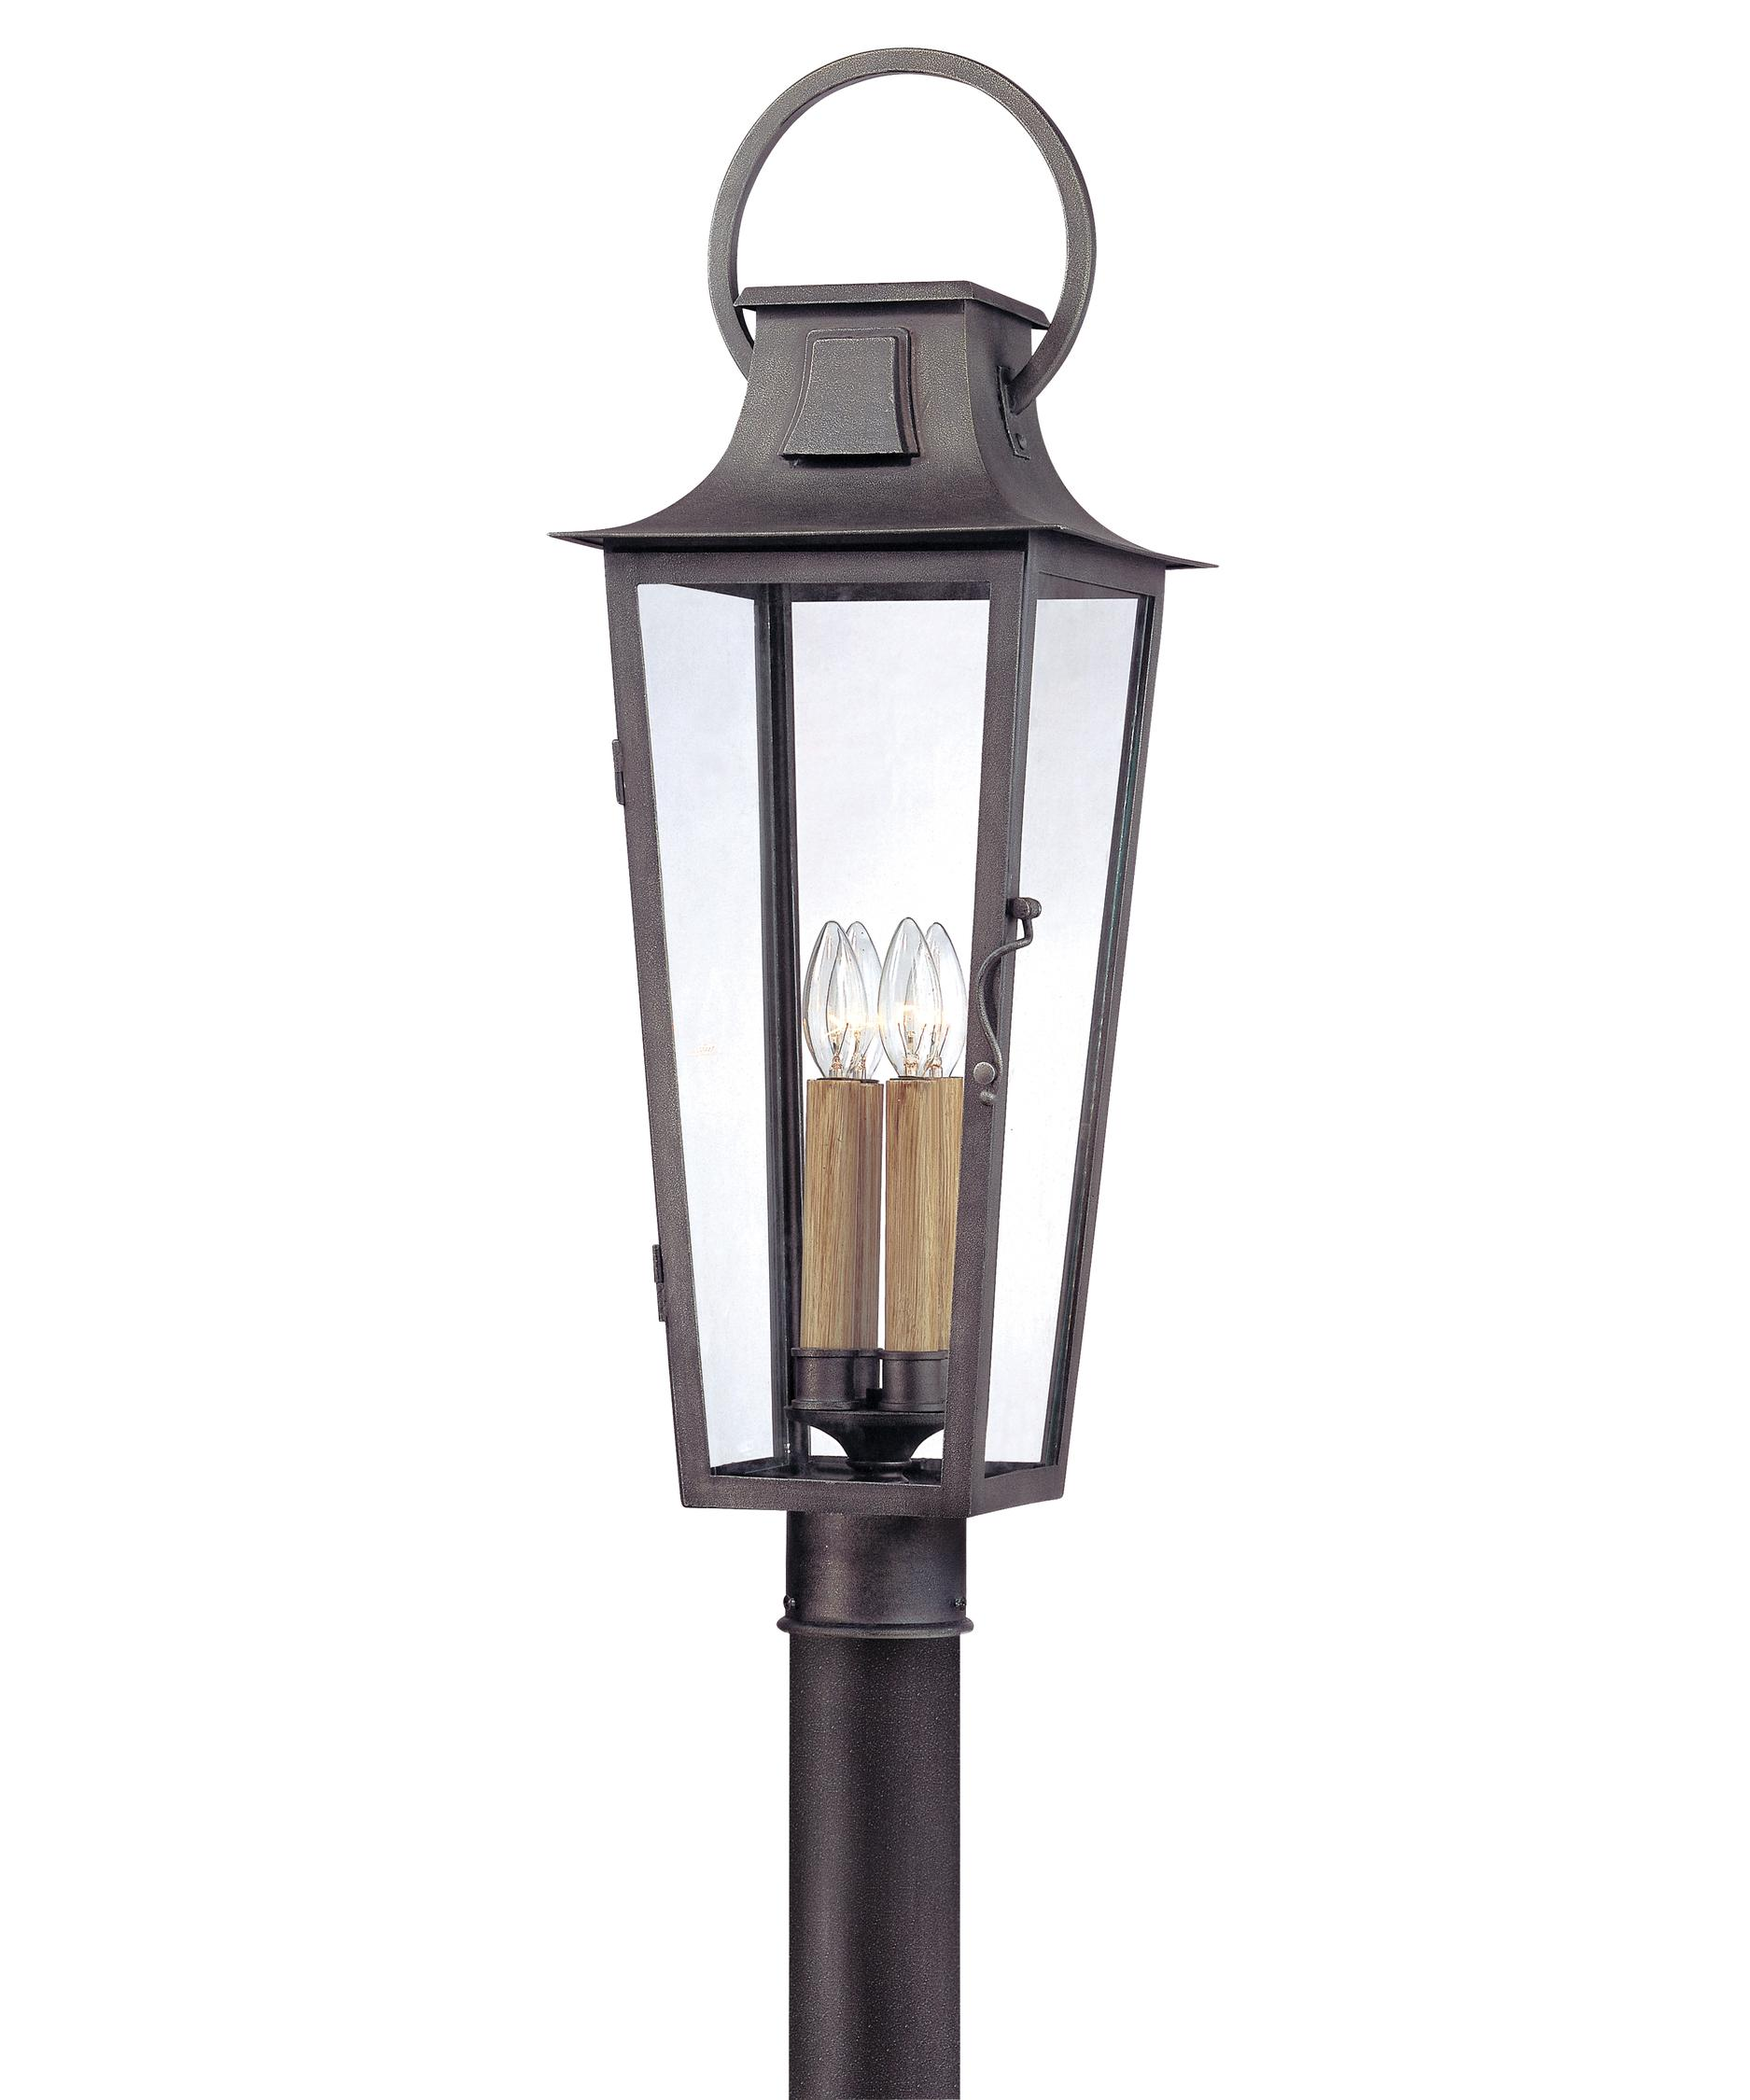 4 light outdoor post lamp photo - 2